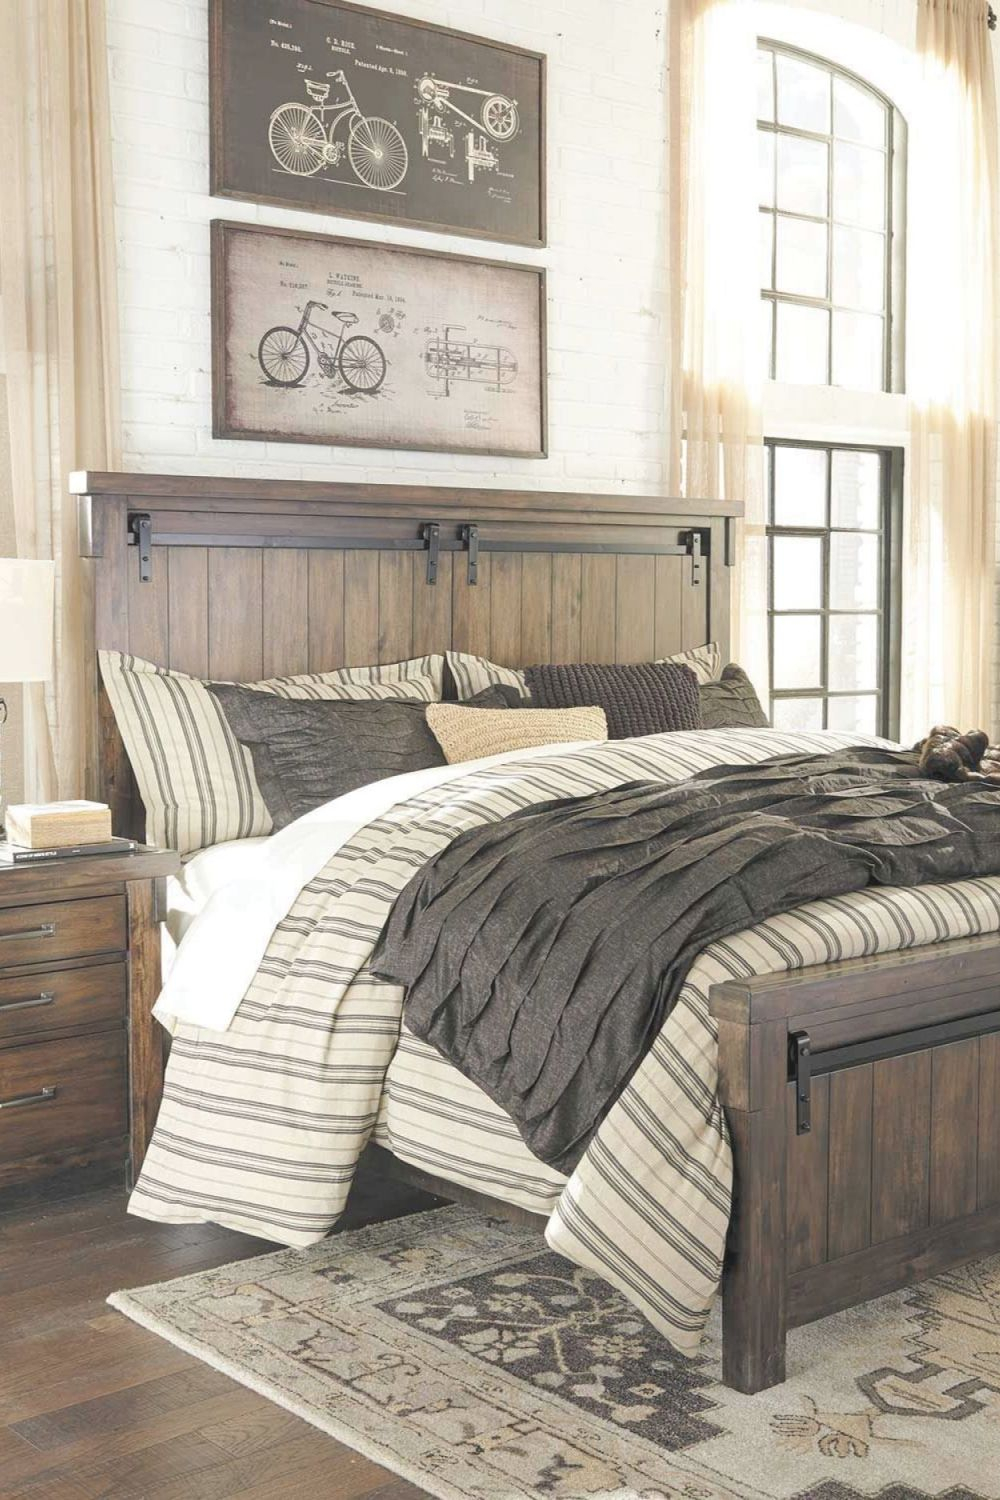 Lakeleigh 5 Piece Bedroom Set | Paid_Board In 2019 | Rustic with regard to Unique Rustic Bedroom Furniture Sets